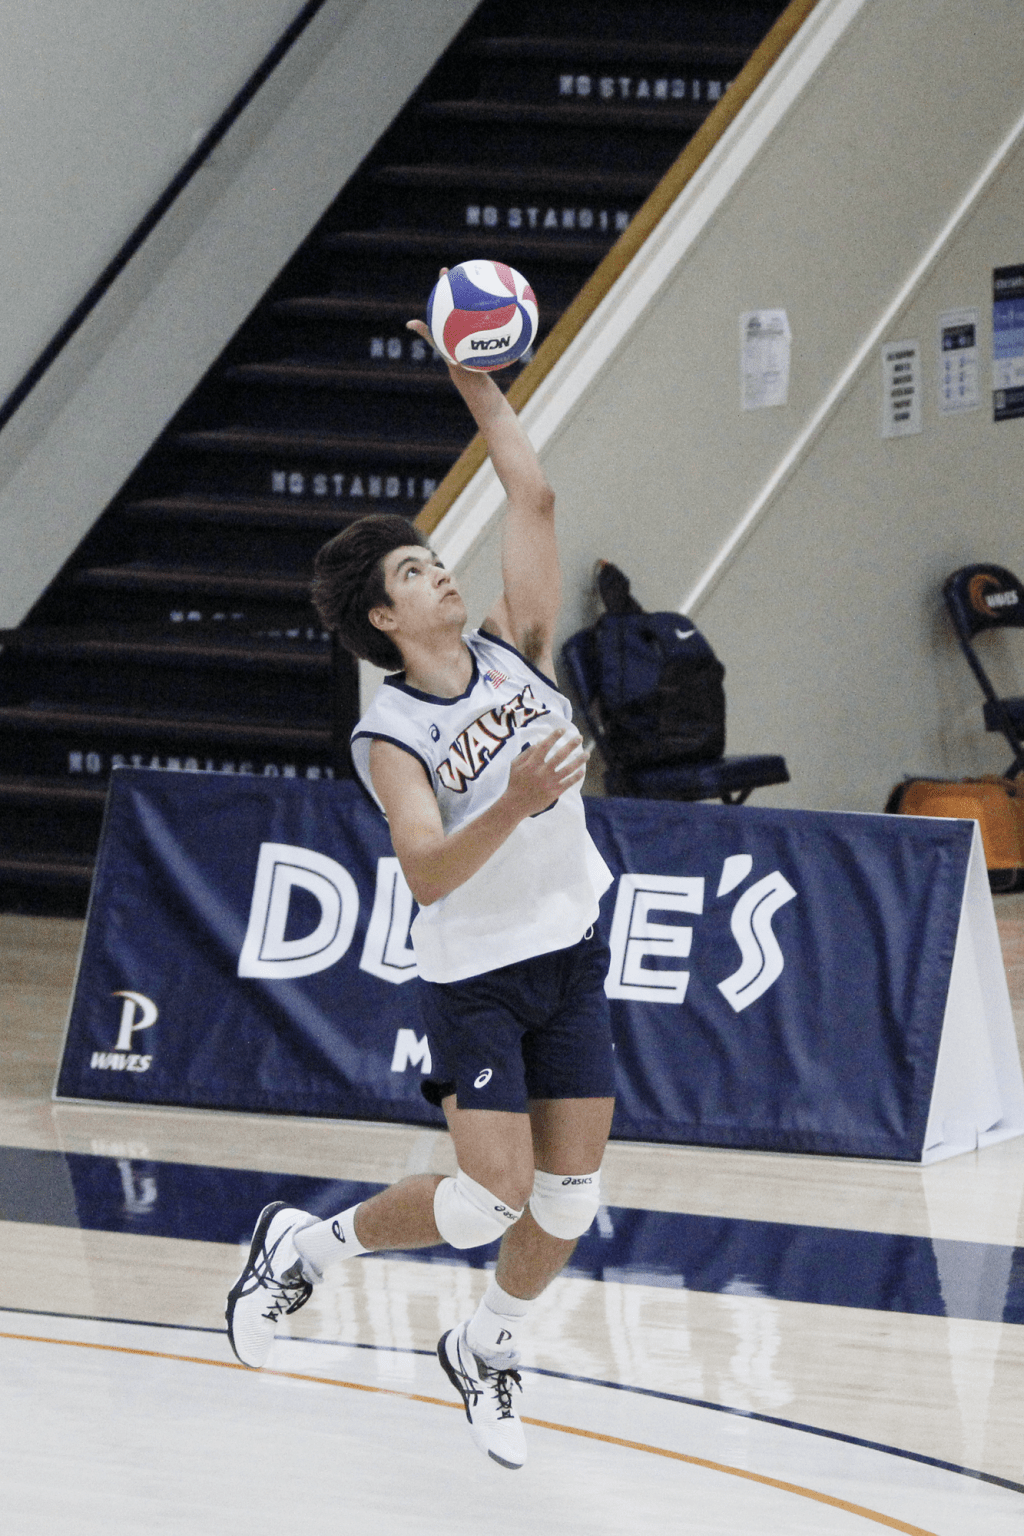 Dvorak serves the ball during the first set on Sunday against GCU at Firestone Fieldhouse. Dvorak earned Mountain Pacific Sports Federation's Defensive Player of the Week for the week of March 29.